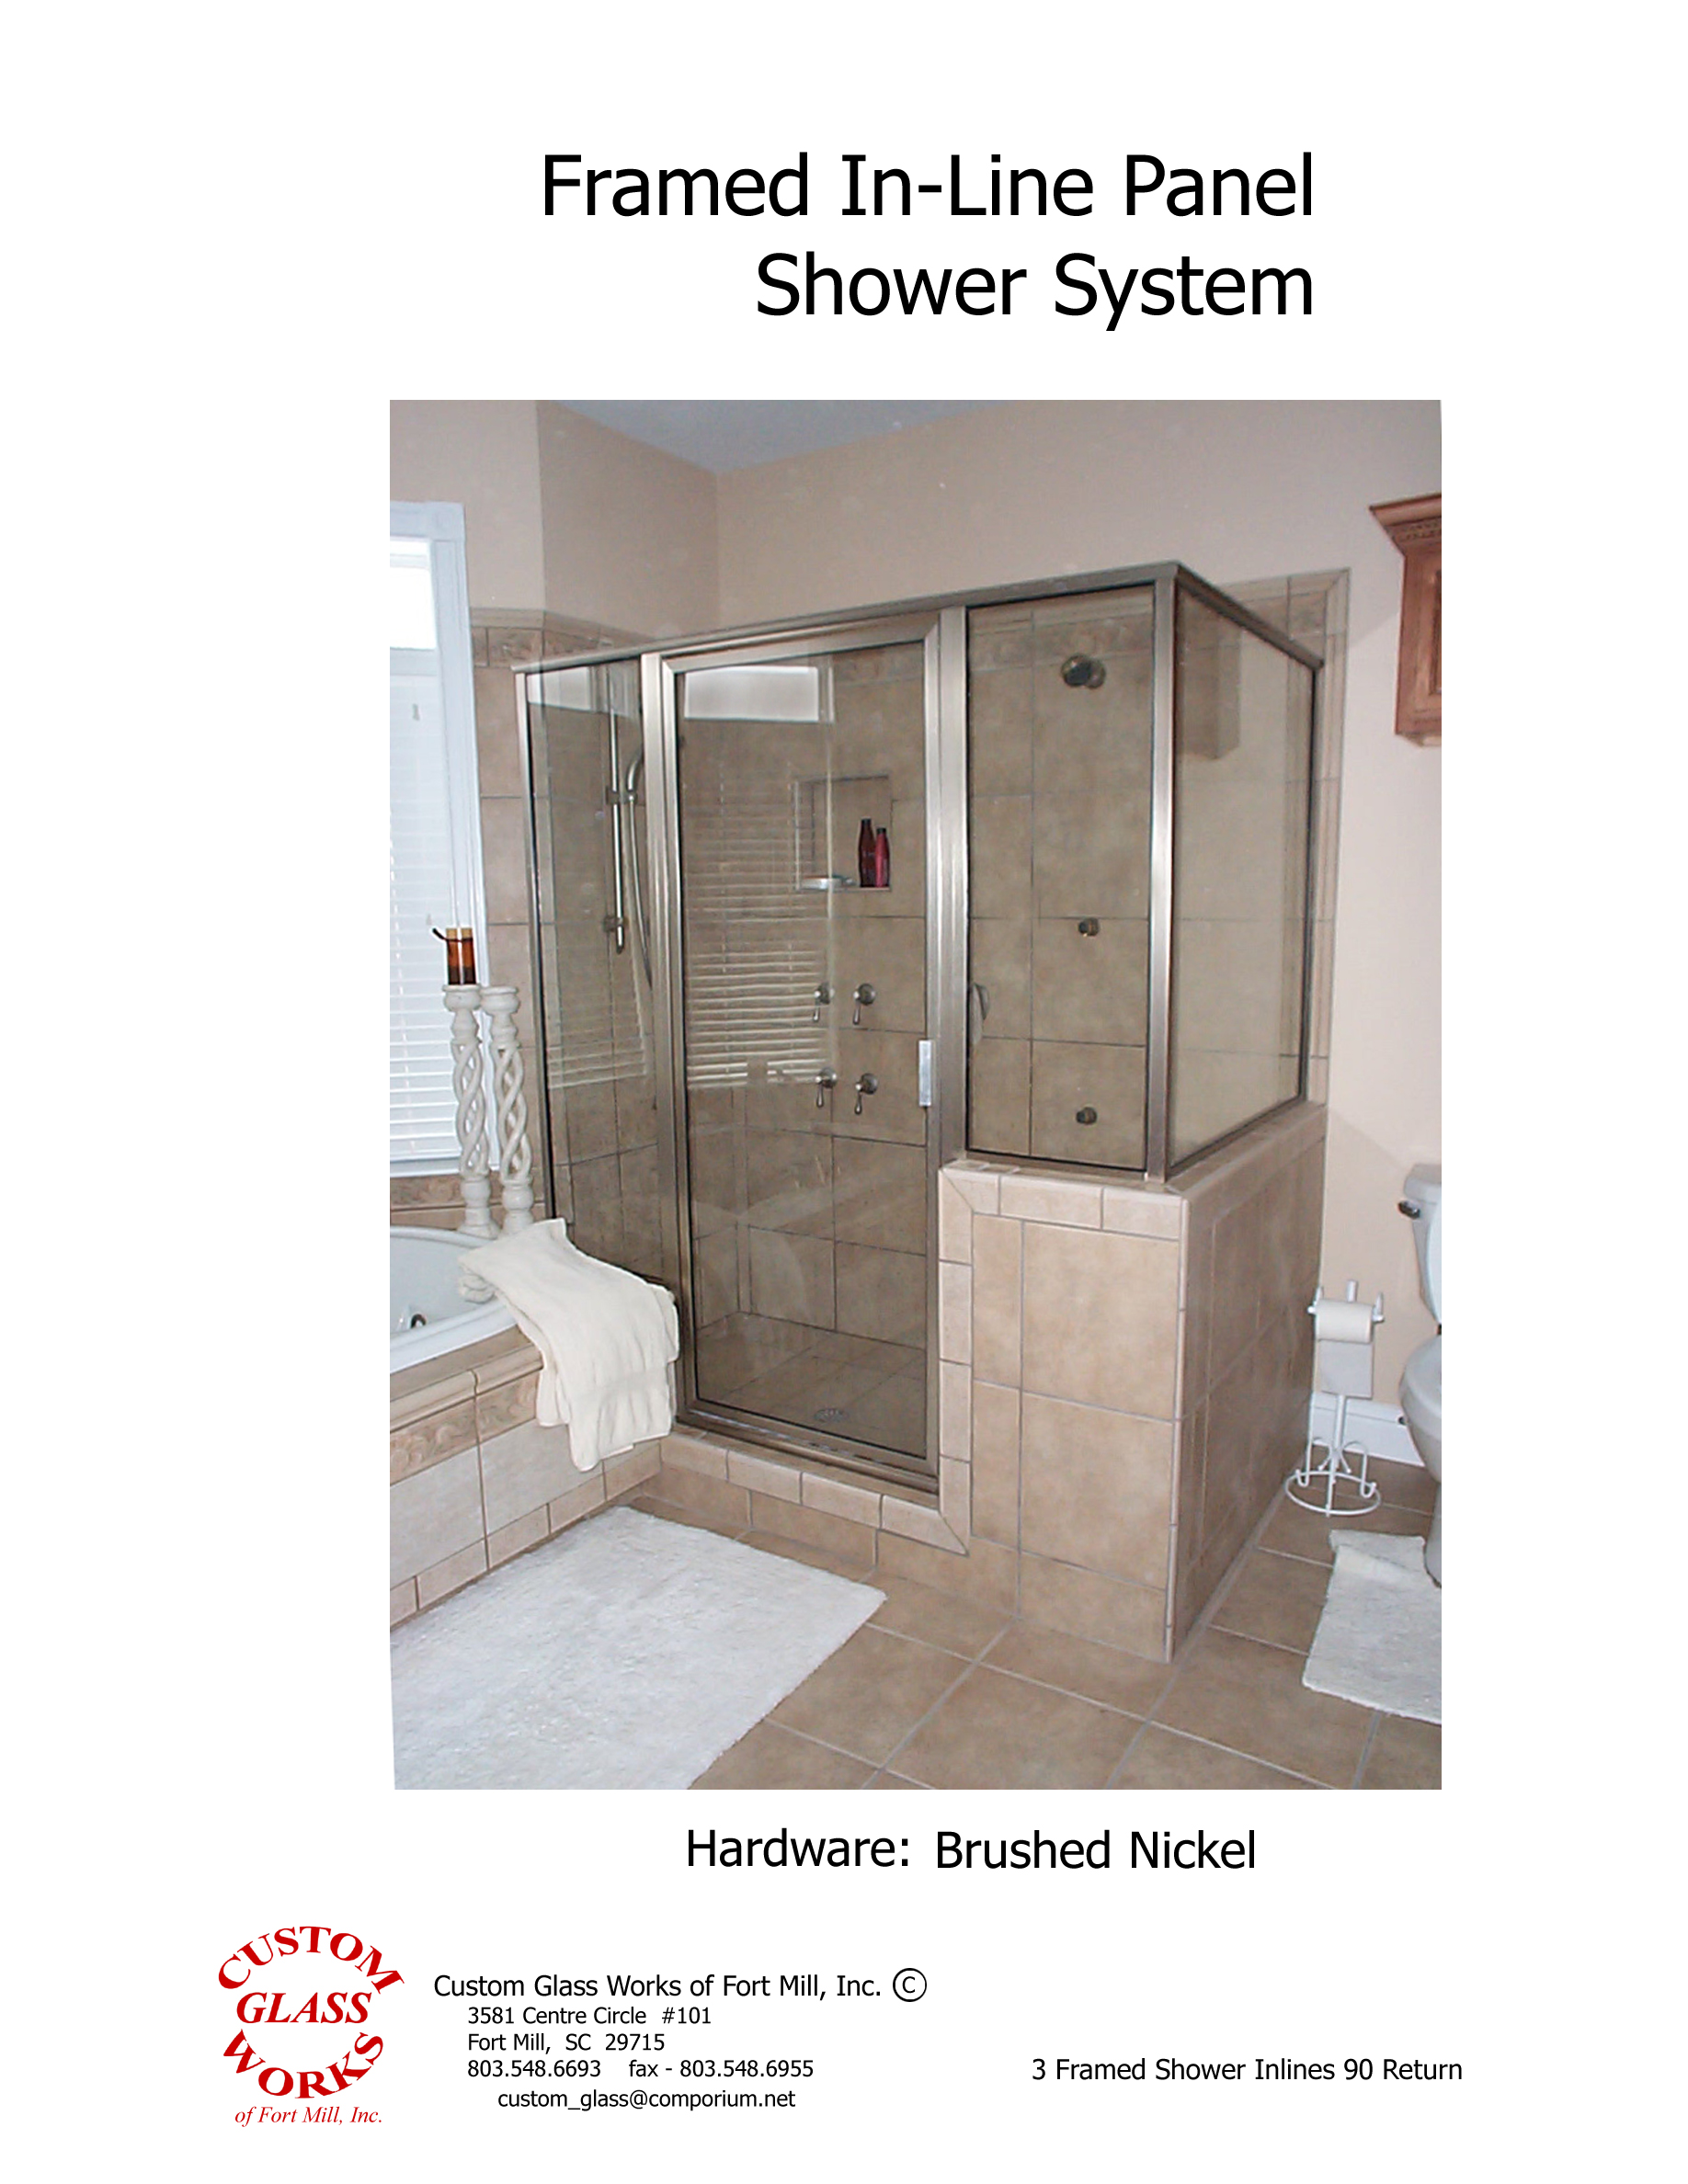 3 Framed Shower Inlines 90 Return